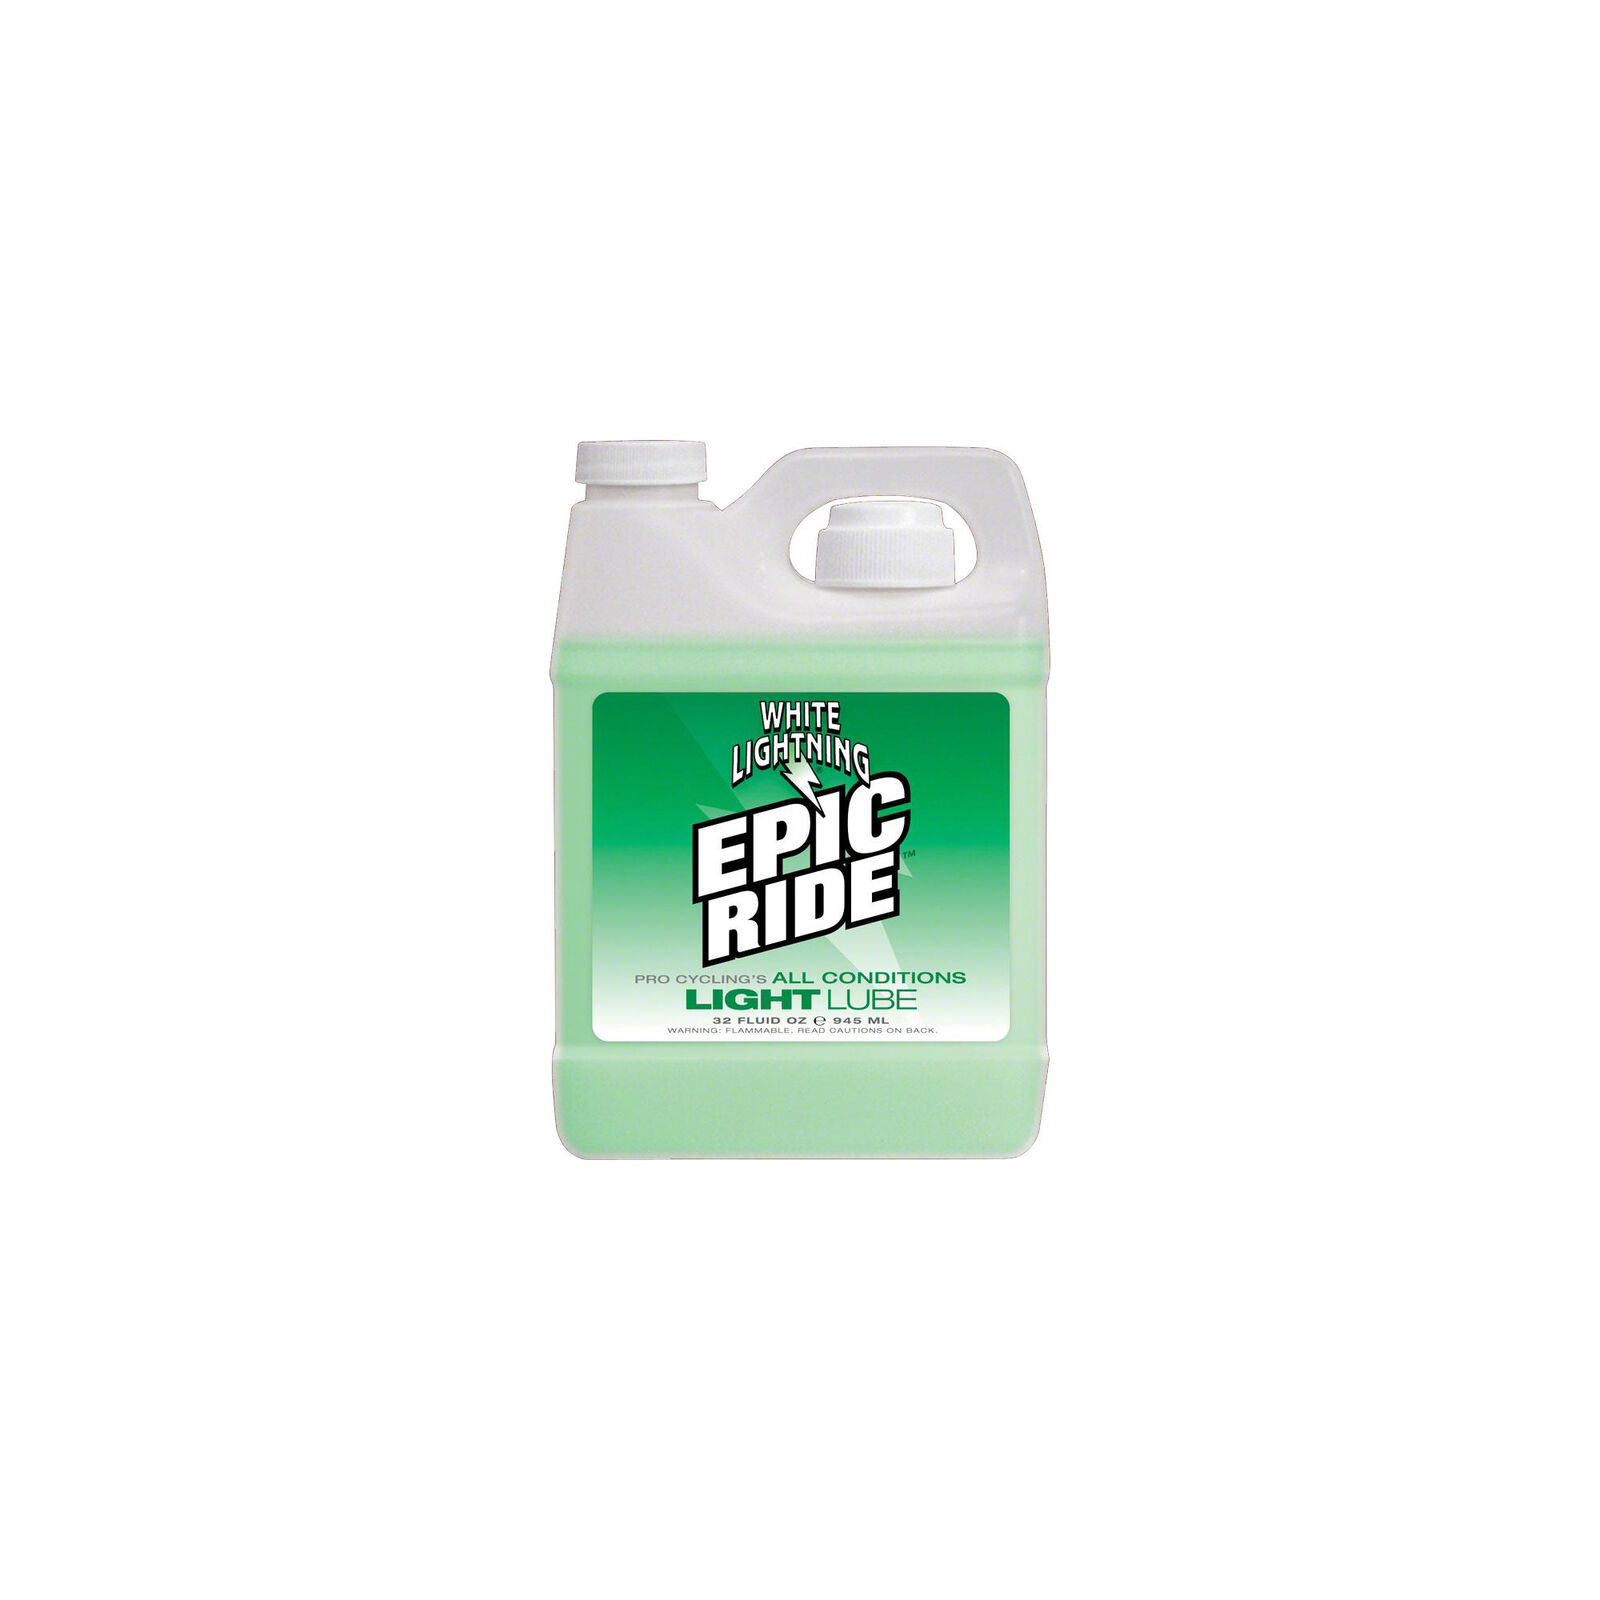 Bianca Lightning Epic Ride, Ride, Ride, 32oz bf5878